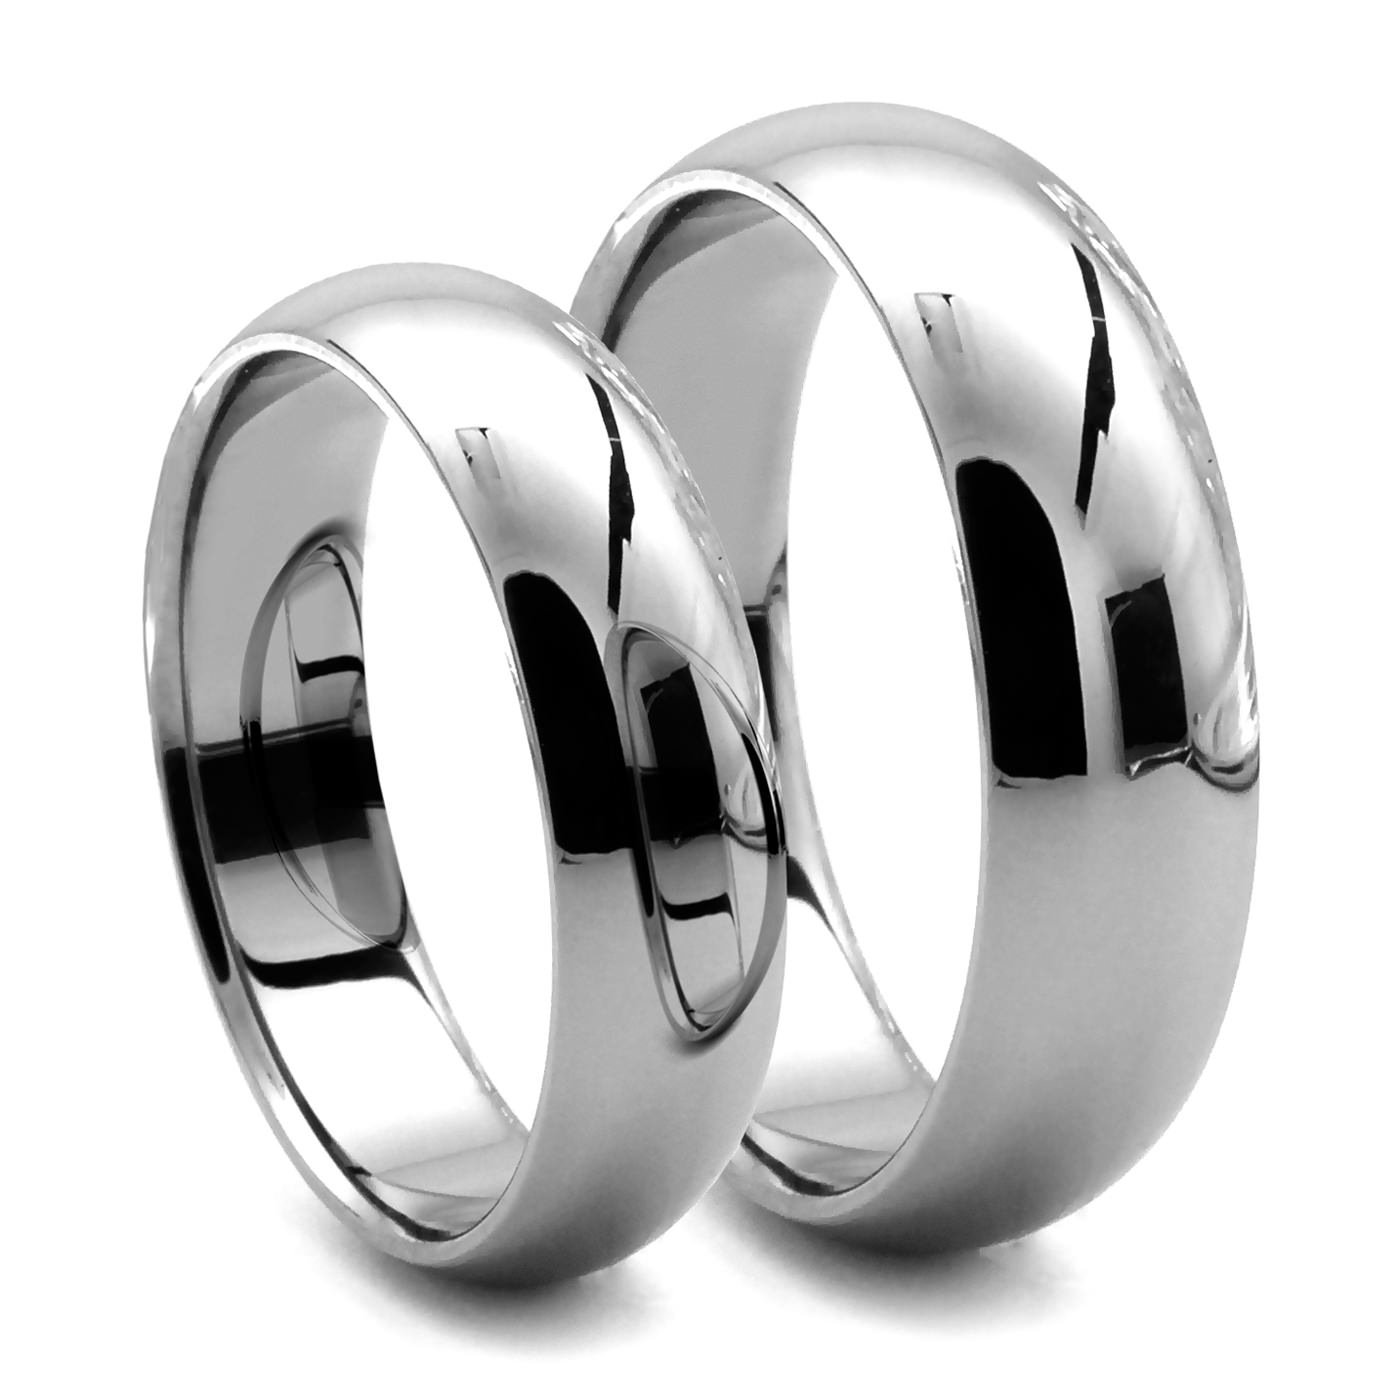 center bands designed bevel rings shape flat image edges titanium court band matt with platinum ring wedding